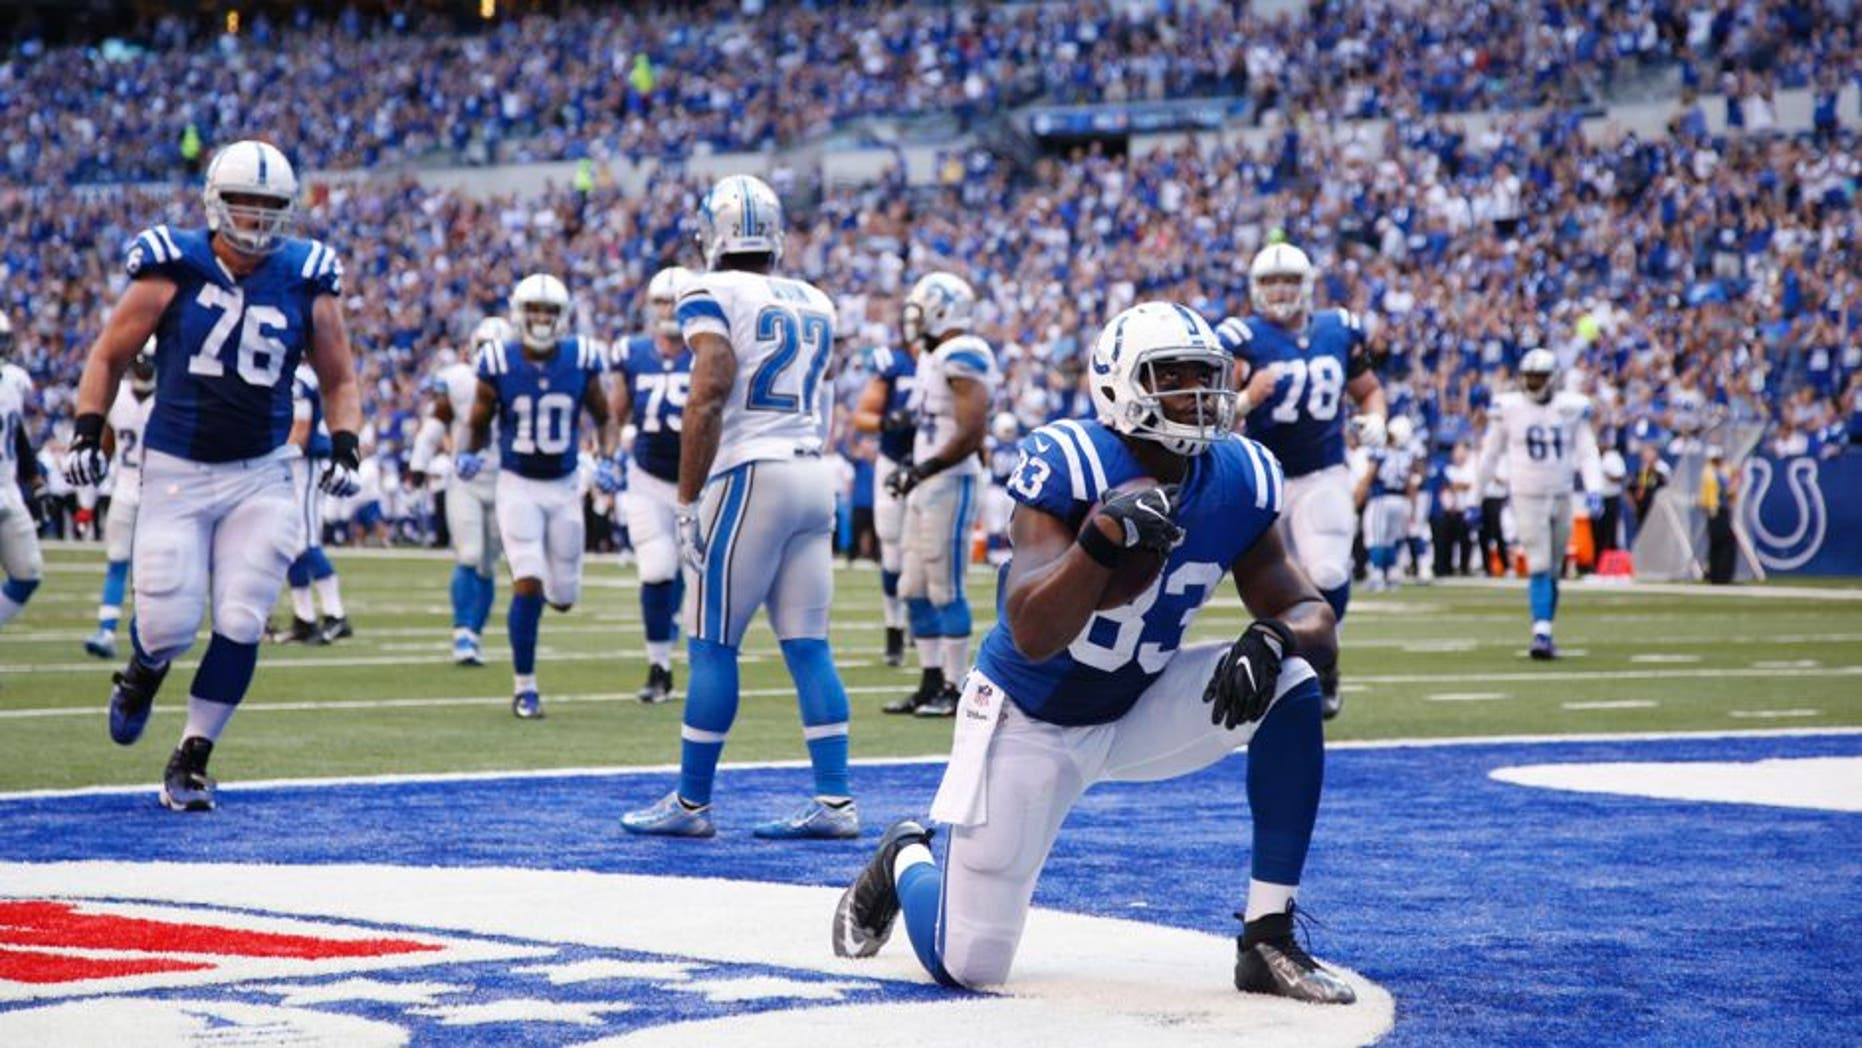 INDIANAPOLIS, IN - SEPTEMBER 11: Dwayne Allen #83 of the Indianapolis Colts reacts after a 19-yard touchdown reception against the Detroit Lions during the game at Lucas Oil Stadium on September 11, 2016 in Indianapolis, Indiana. The Lions defeated the Colts 39-35. (Photo by Joe Robbins/Getty Images)